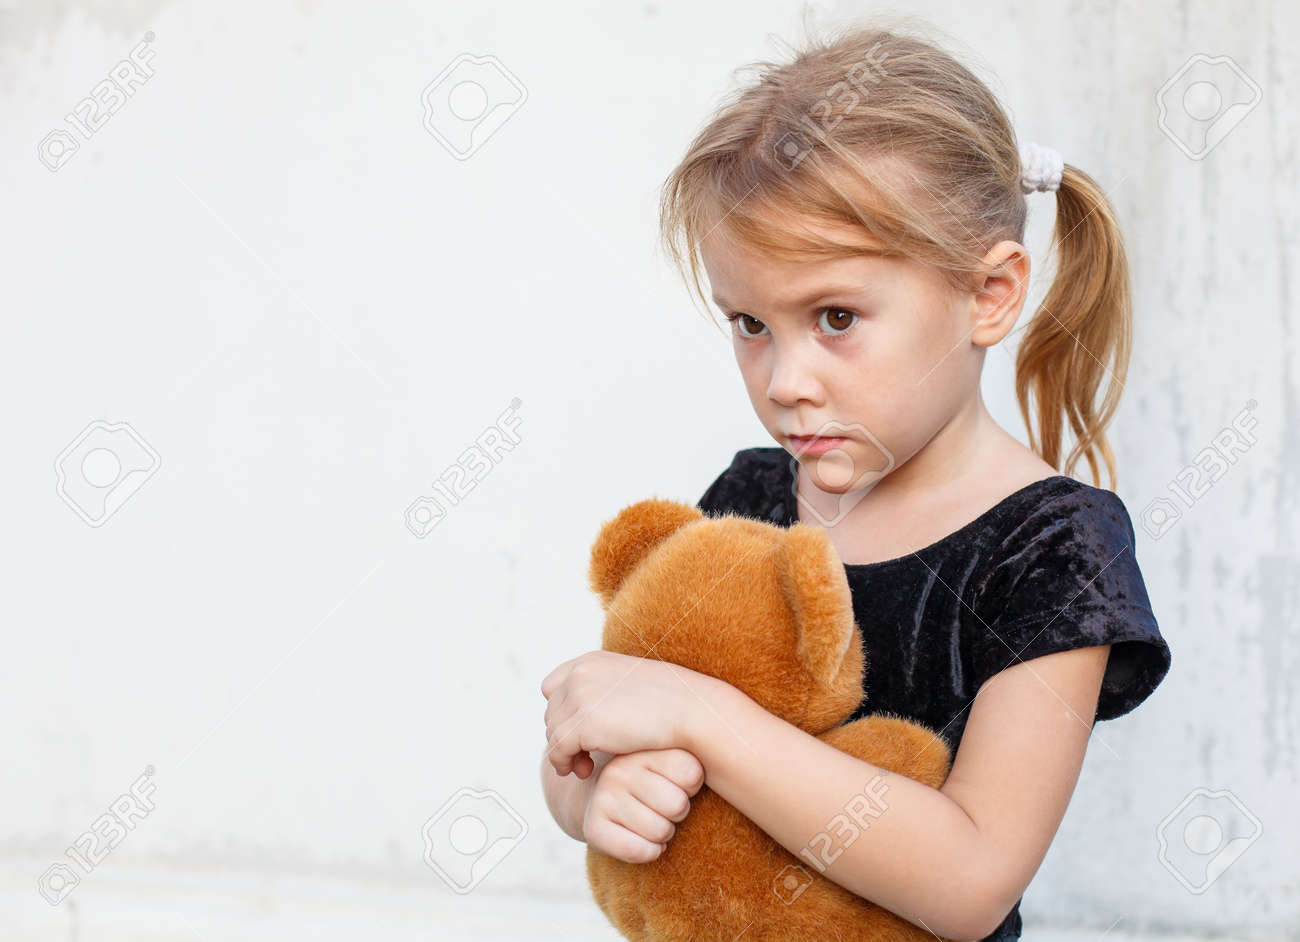 littl nude kids scared child: sad little girl on background the wall with toy